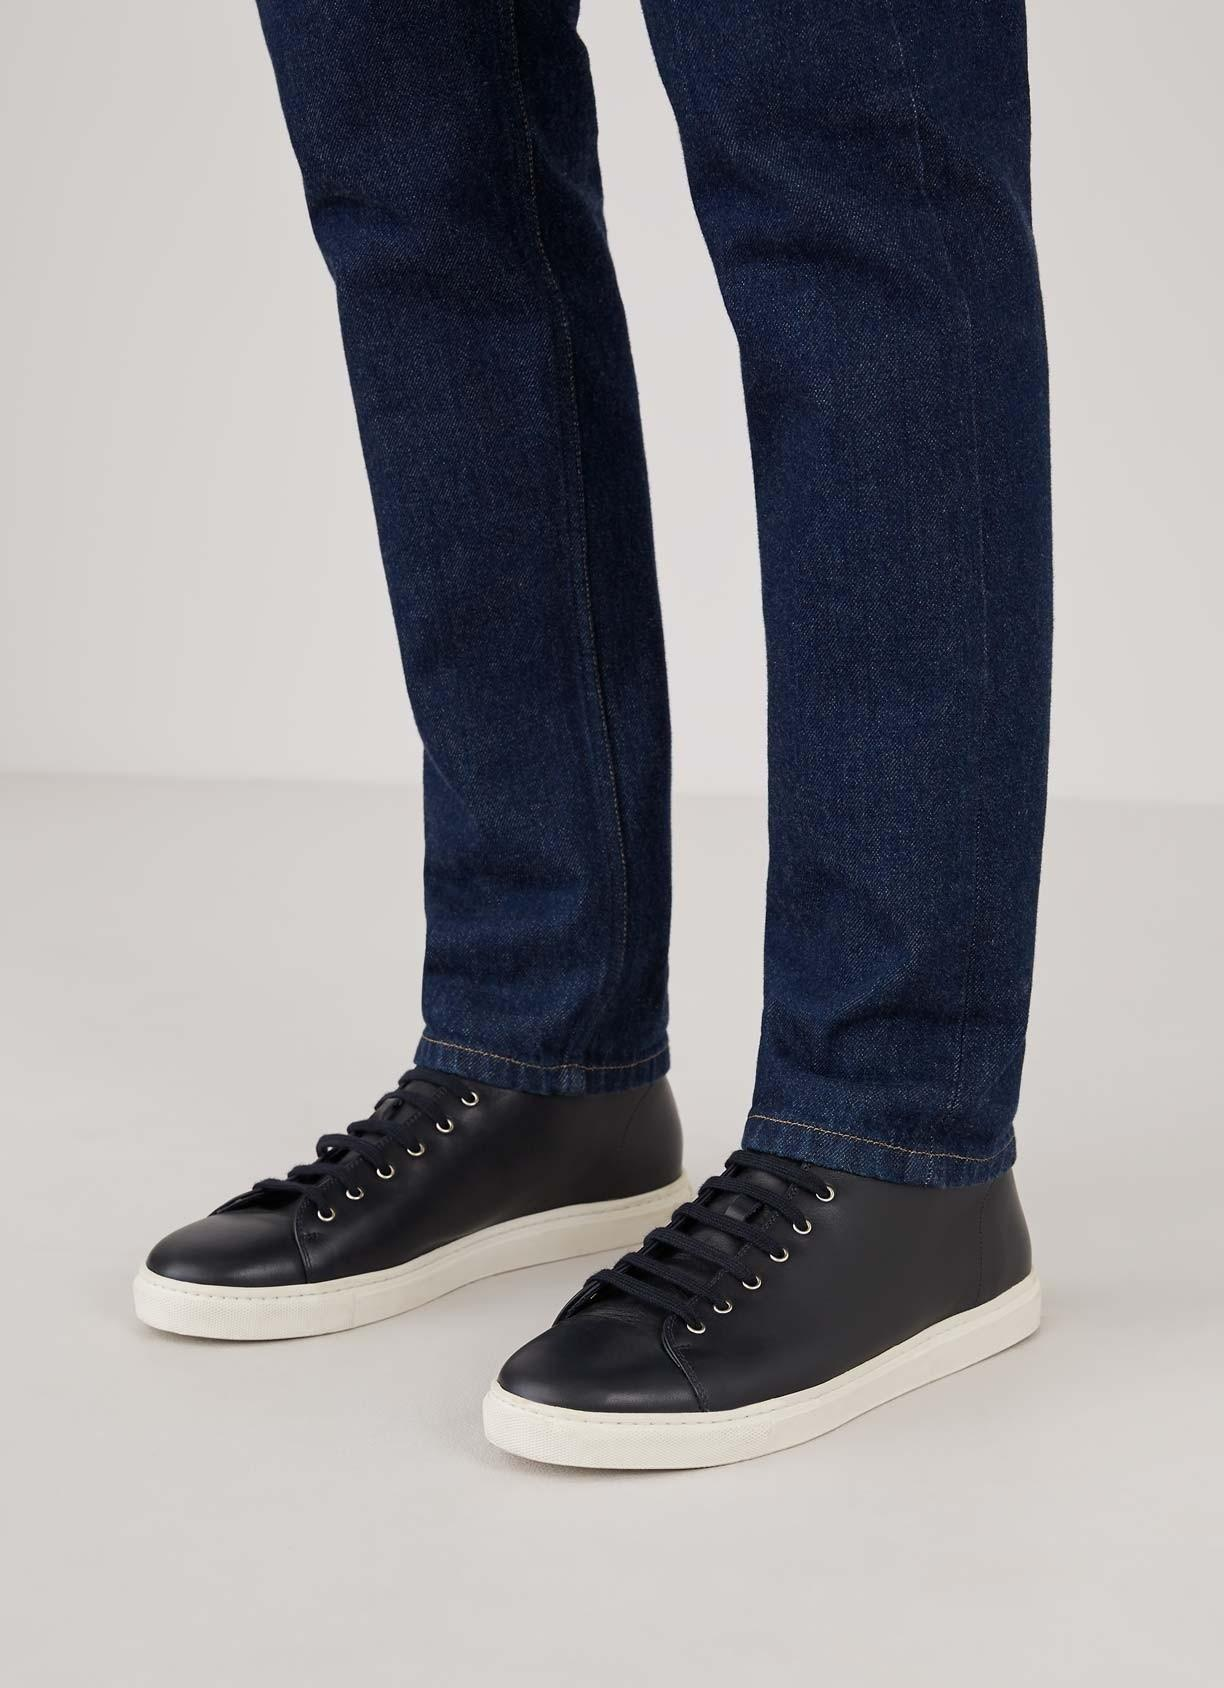 Sunspel Leather Men's High Top Tennis Shoes In Navy in Blue for Men